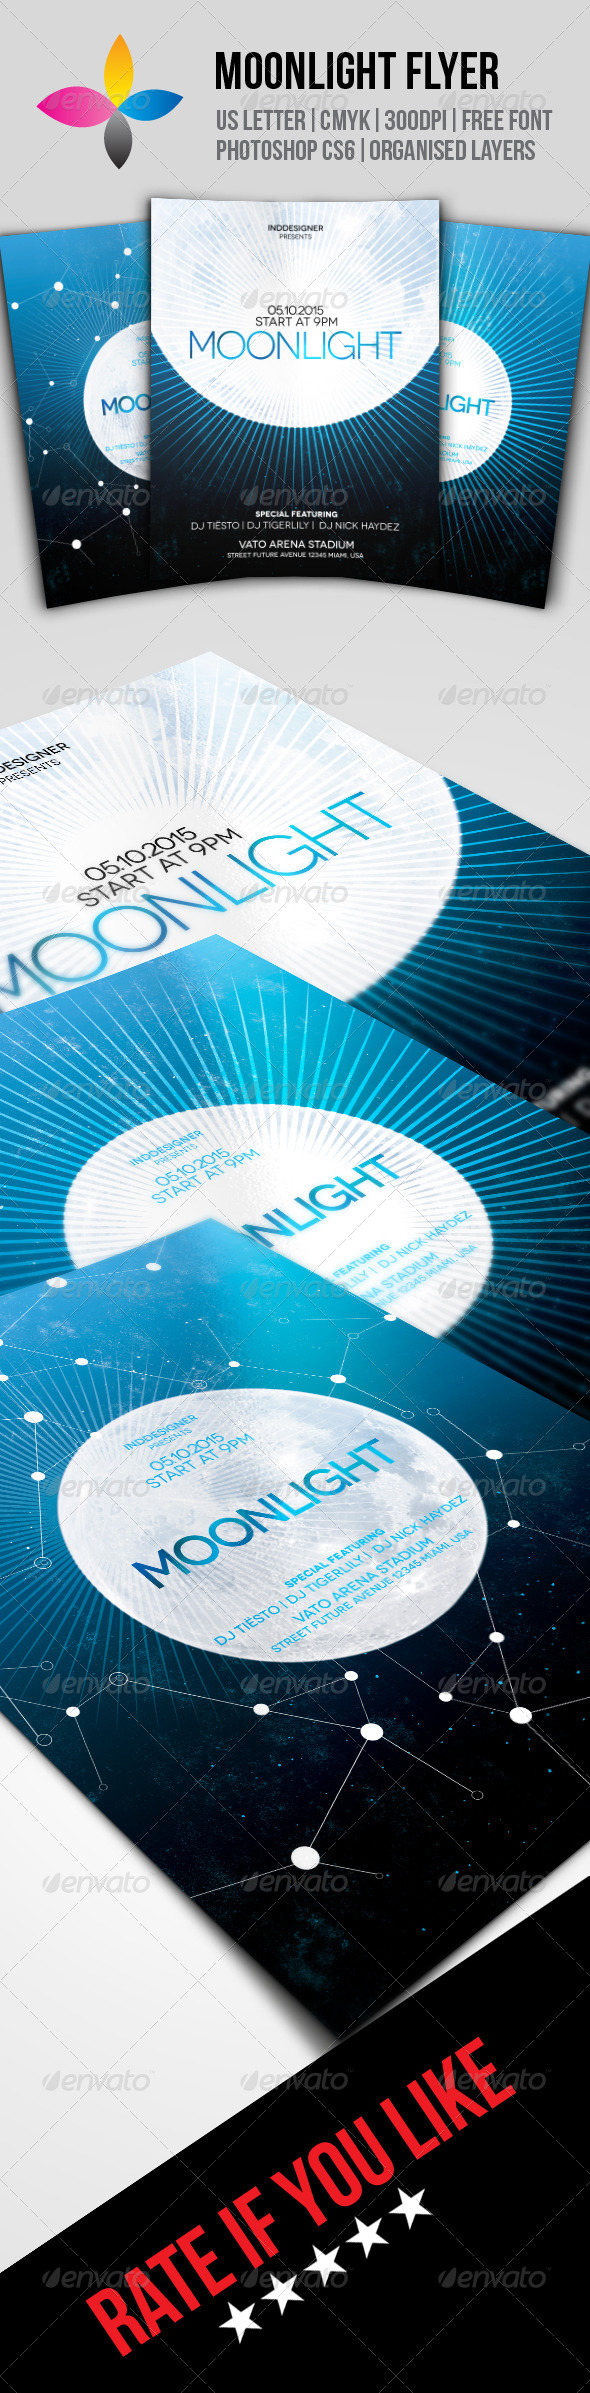 GraphicRiver Moonlight Flyer 8169731